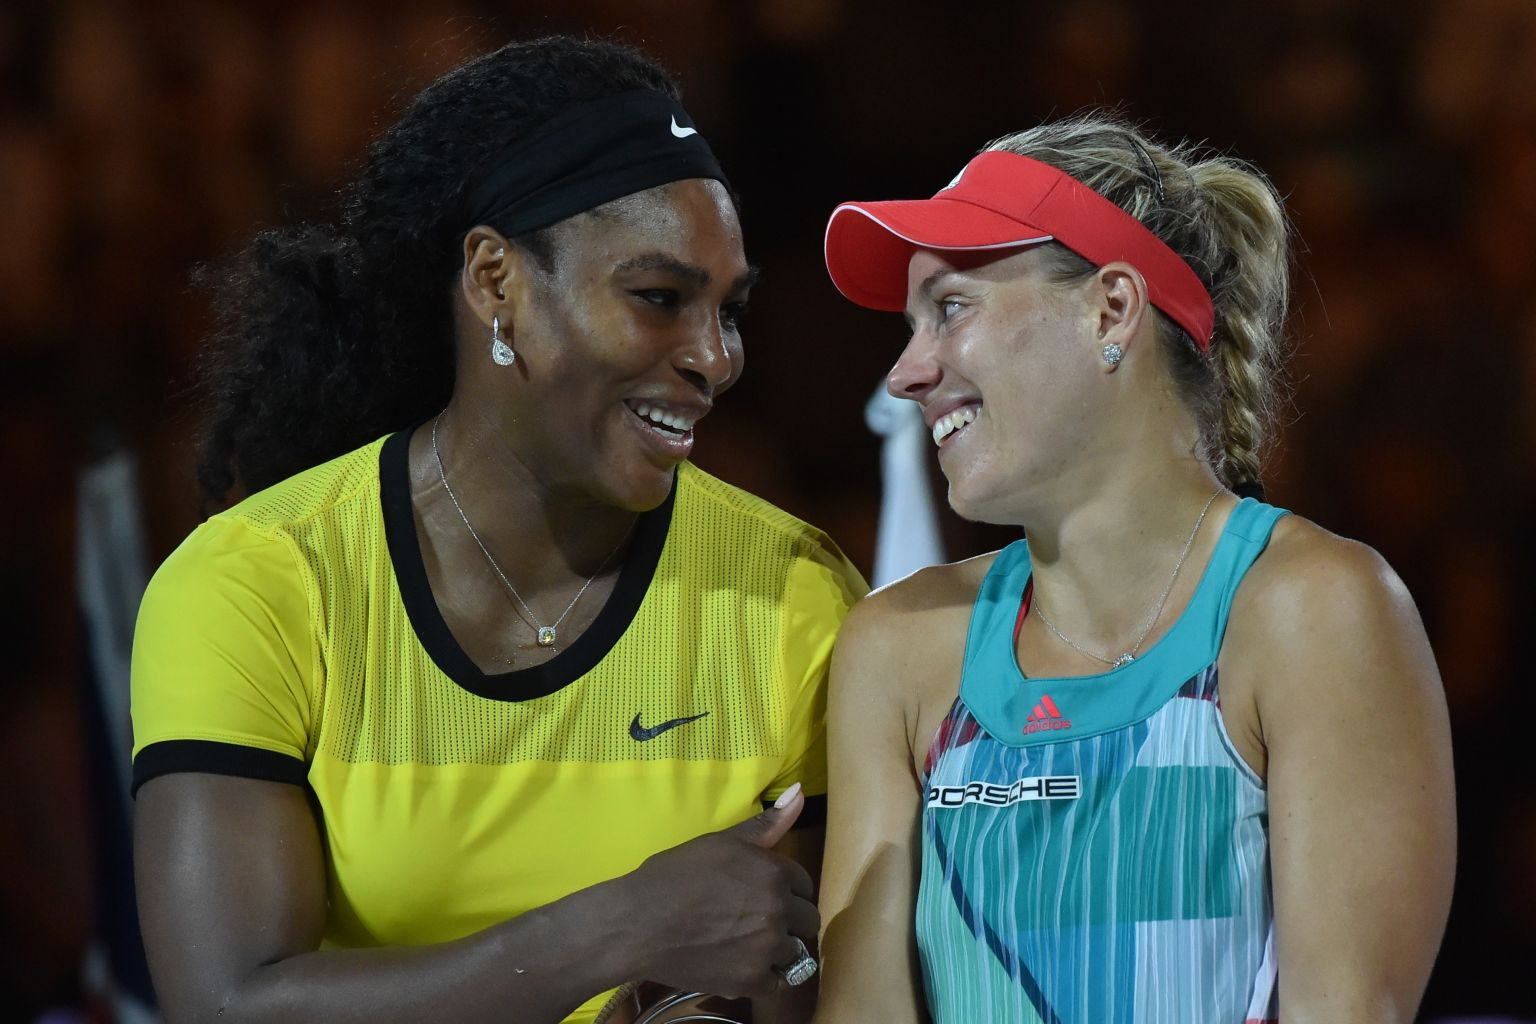 Angelique Kerber of Germany (R) is congratulated during the awards ceremony by Serena Williams of the US (L) after Kerber's victory in their women's singles final match on day 13 of the 2016 Australian Open tennis tournament in Melbourne on January 30, 2016. AFP PHOTO / PAUL CROCK -- IMAGE RESTRICTED TO EDITORIAL USE - STRICTLY NO COMMERCIAL USE / AFP / PAUL CROCK        (Photo credit should read PAUL CROCK/AFP/Getty Images)